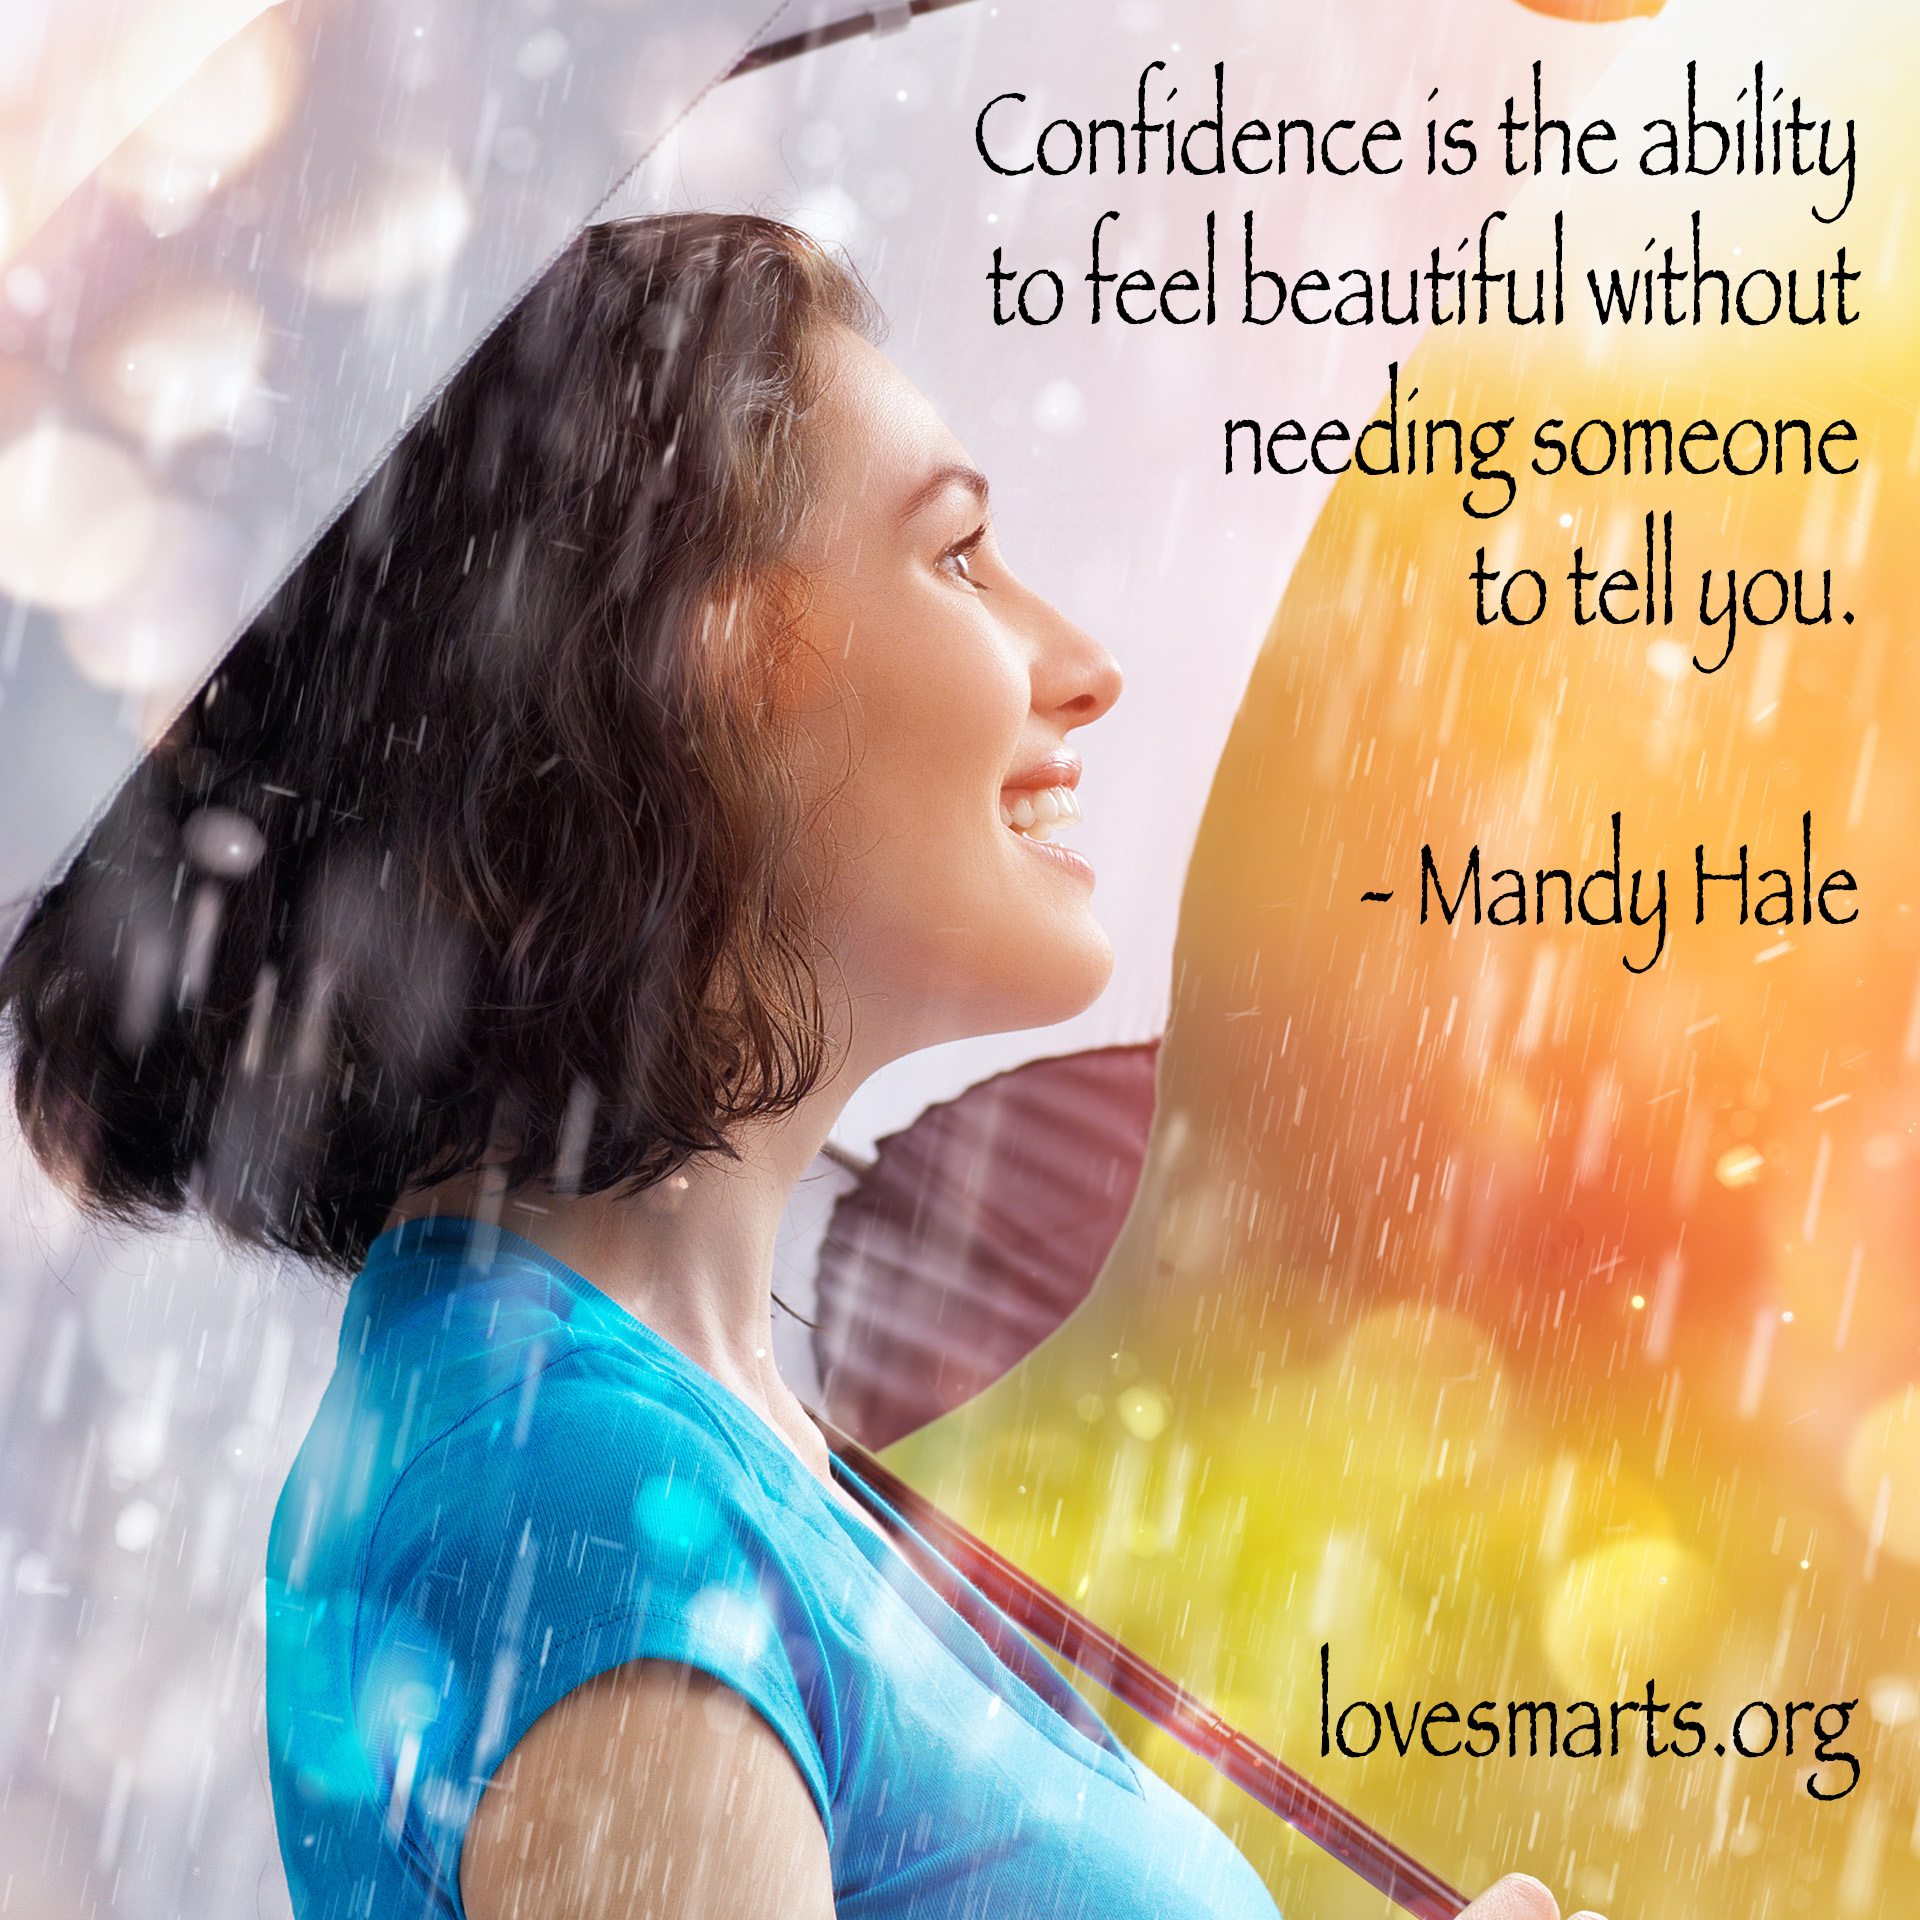 Confidence is the ability to feel beautiful without needing someone to tell you. - Mandy Hale